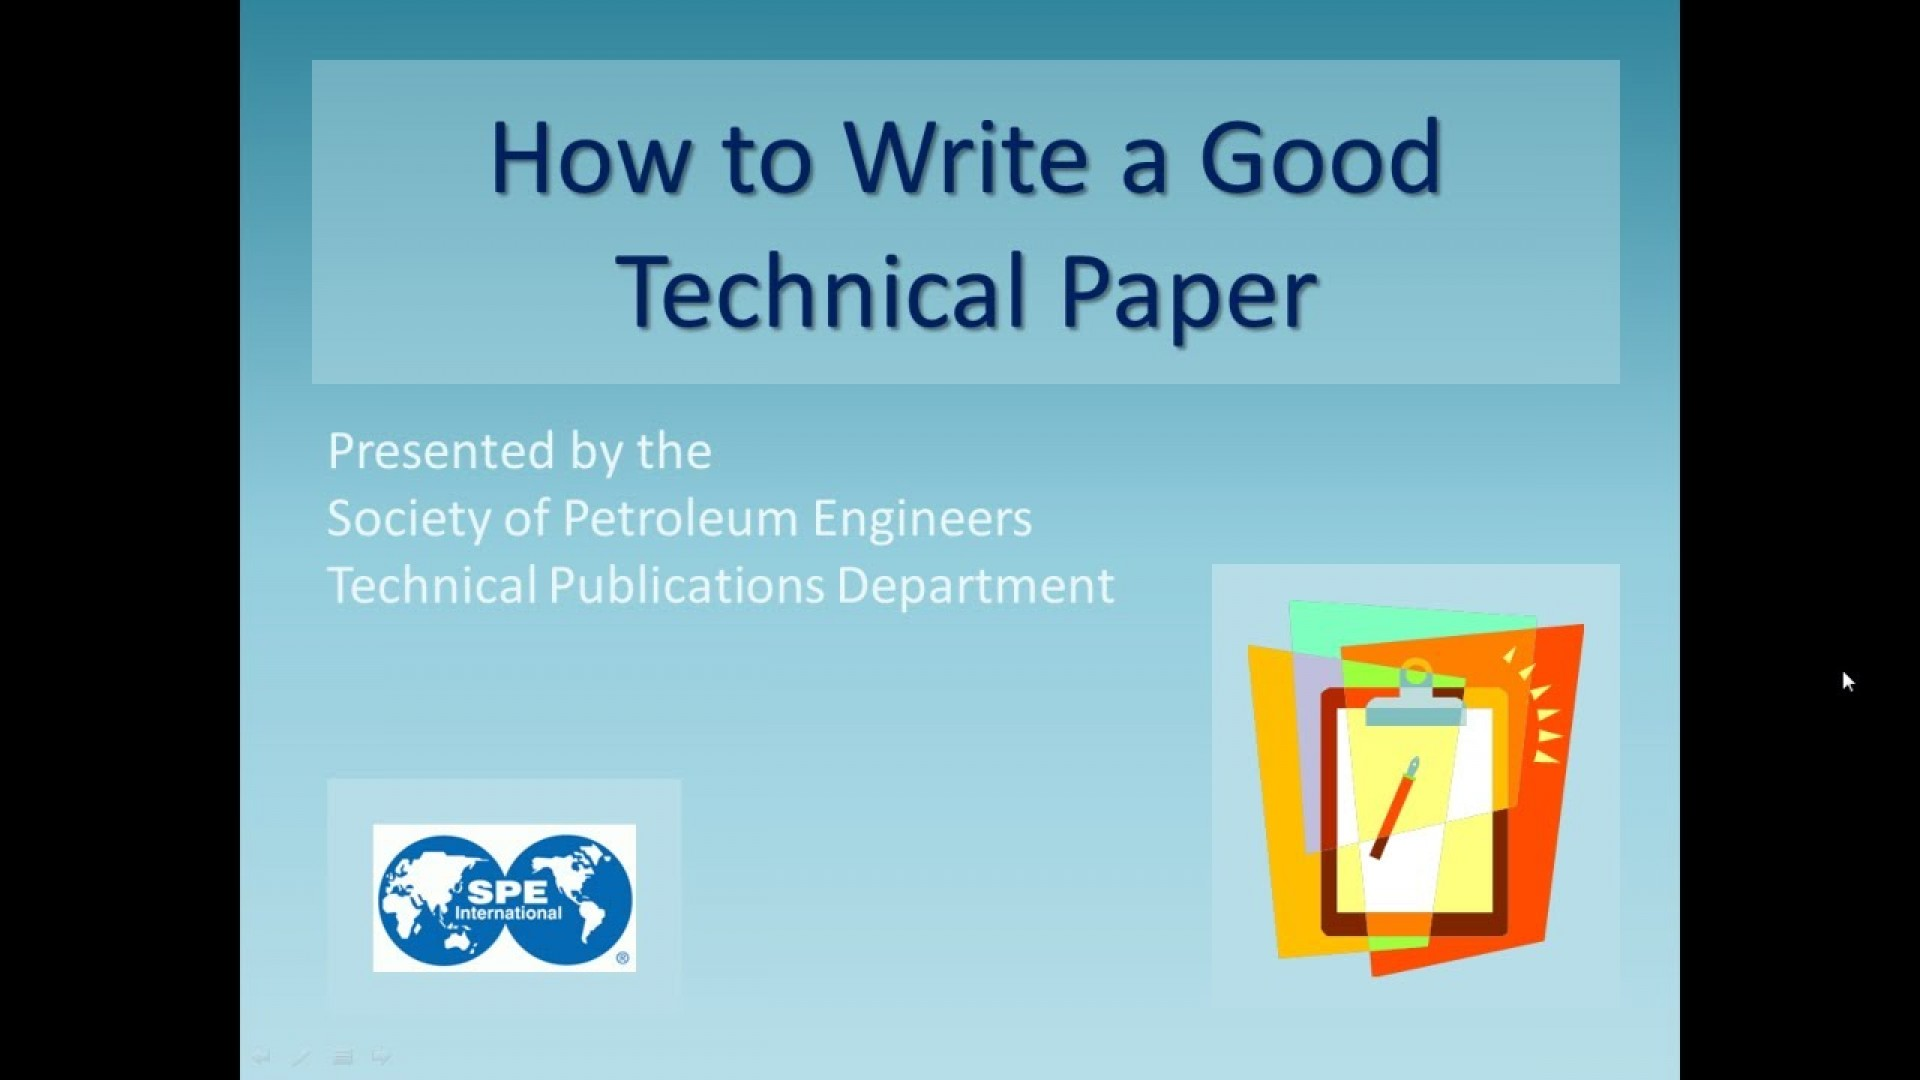 004 Research Paper Maxresdefault How To Write Good Remarkable A Youtube In Apa 1920